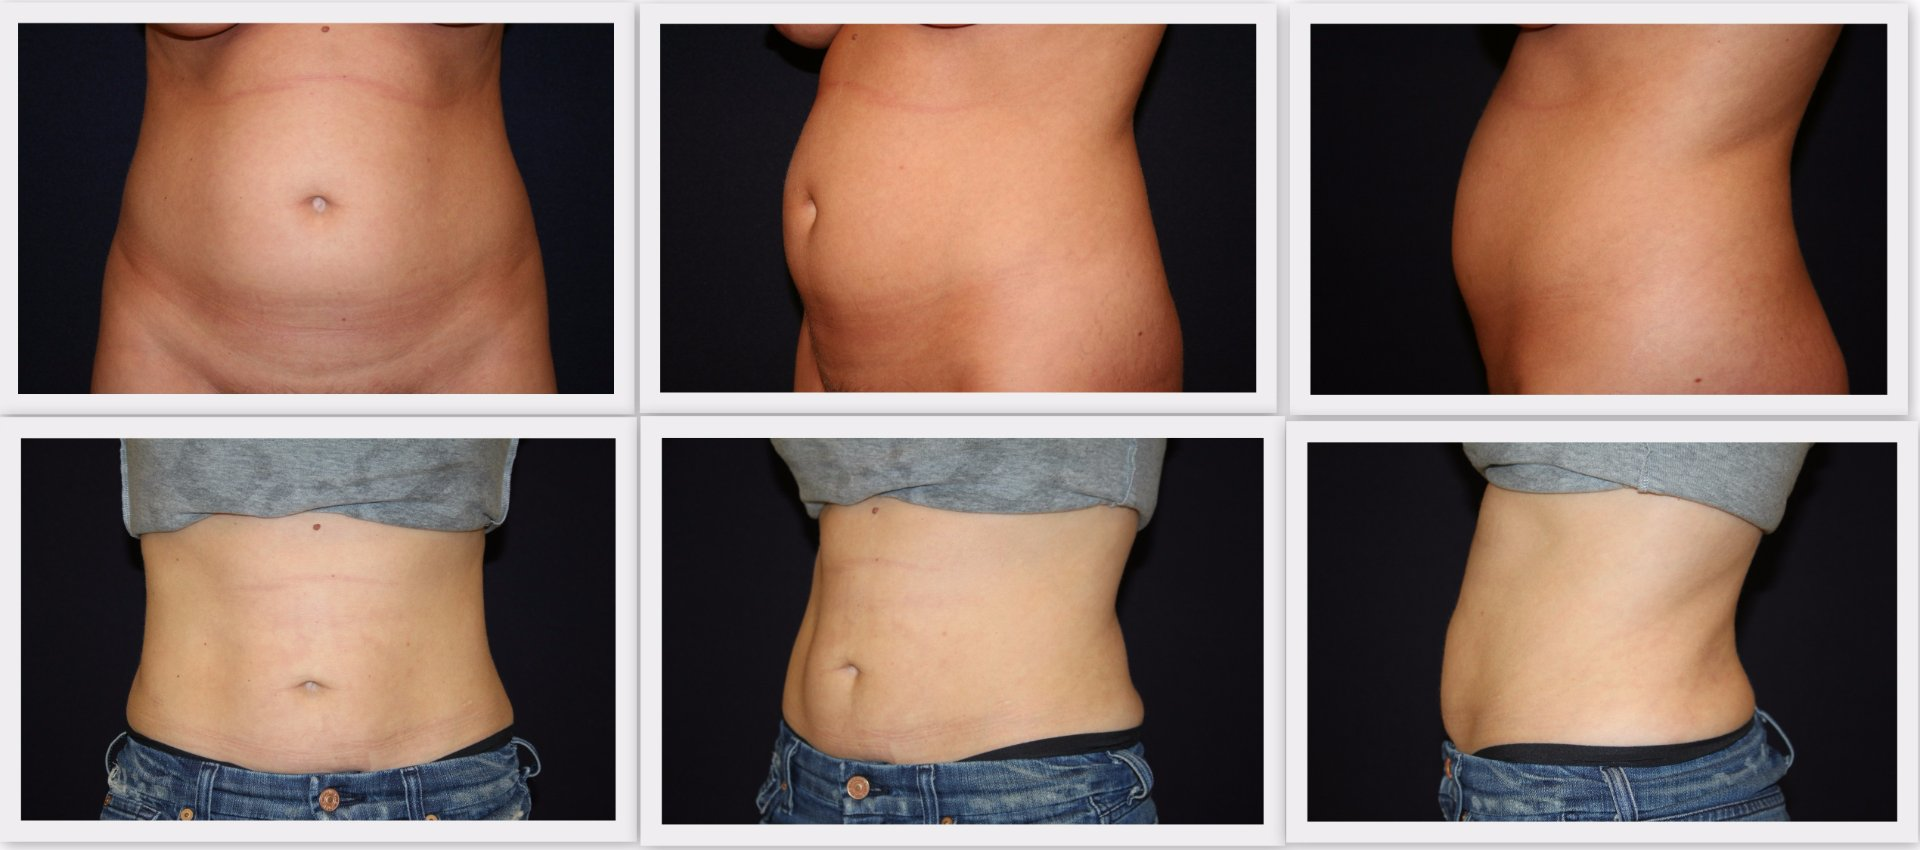 Liposuction tummy Dr. Nelissen - Global Care Clinic